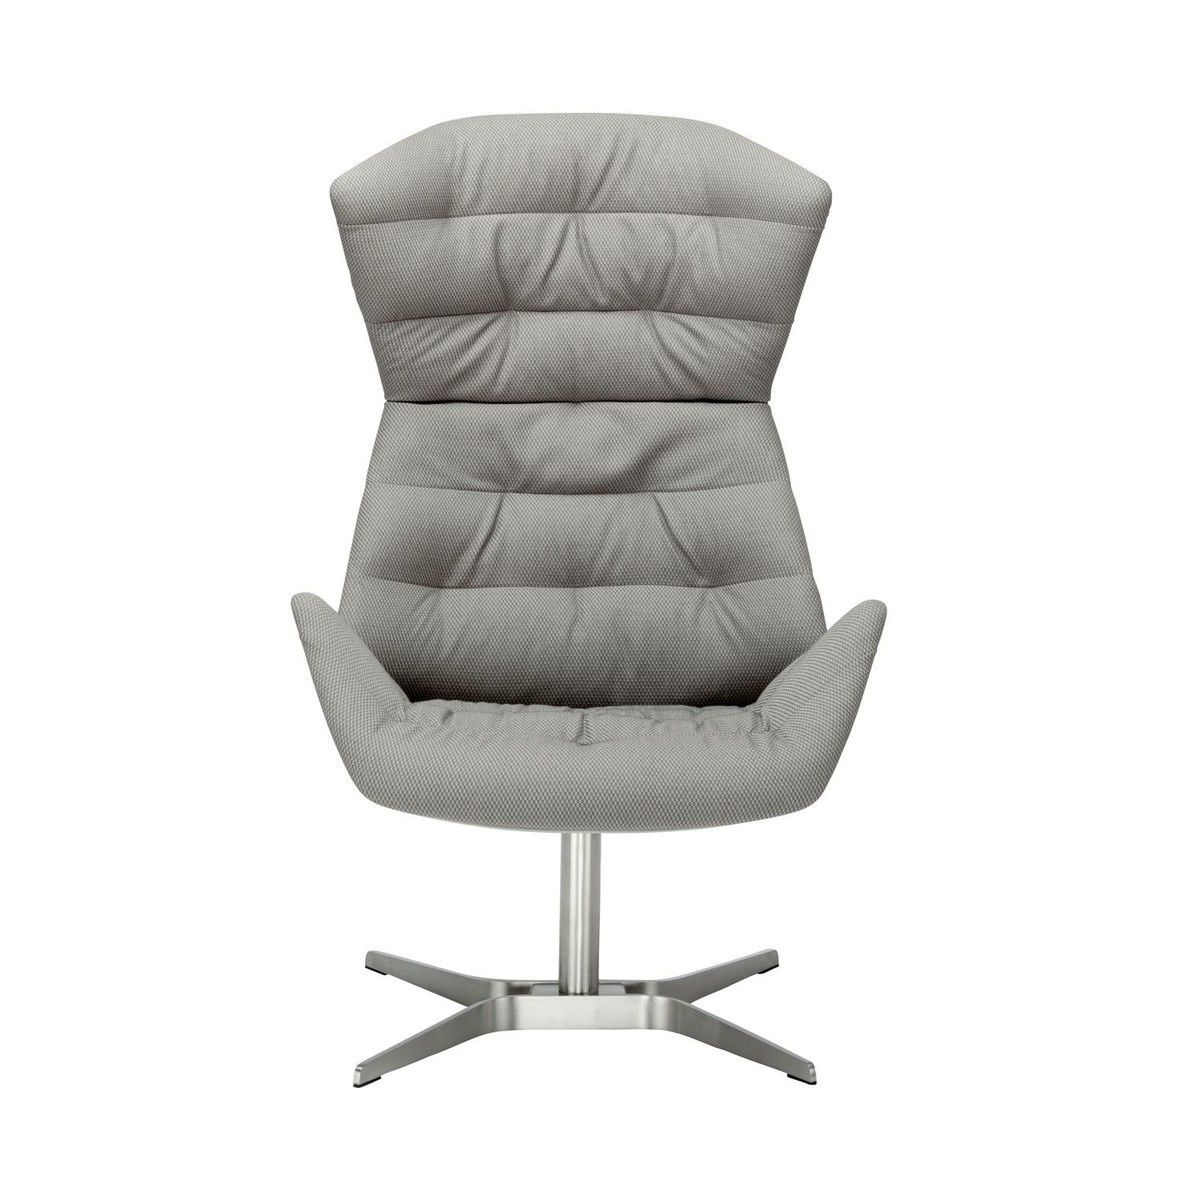 Air Lounge Sessel Thonet Lounge Sessel 808 Thonet Ambientedirect